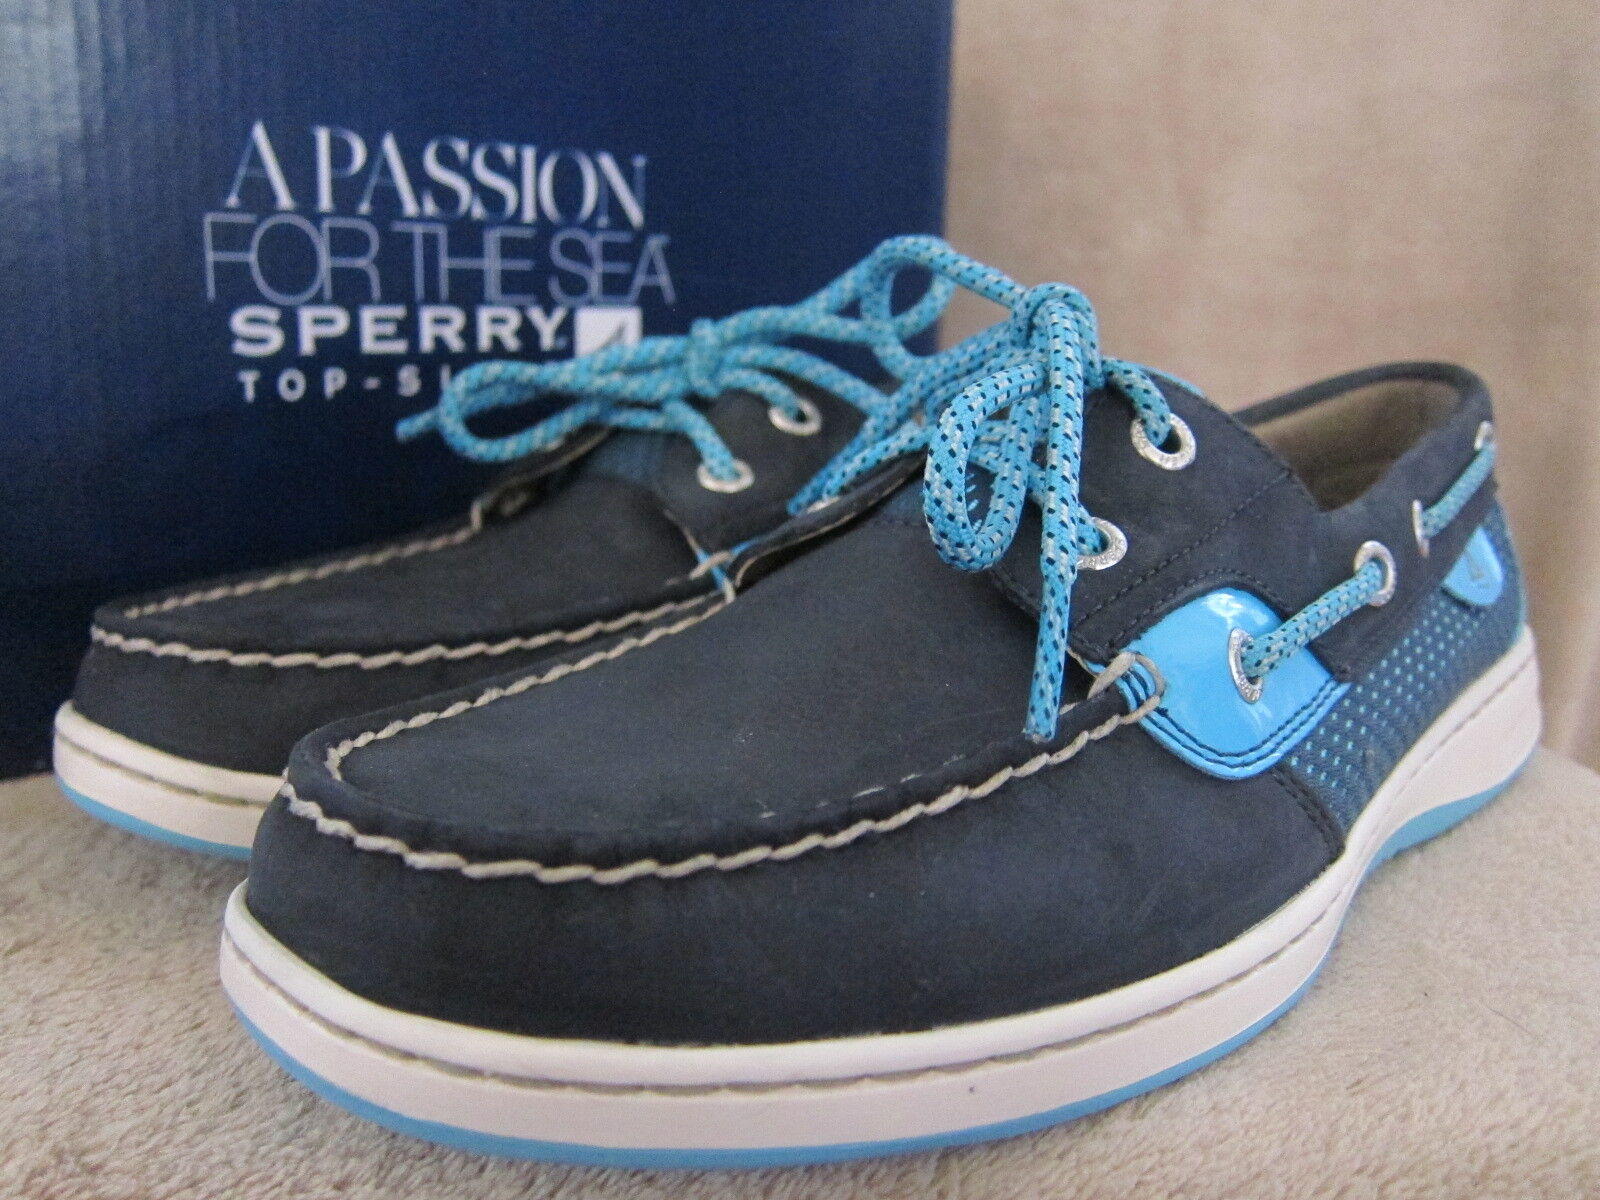 SPERRY Top Sider Loafer blufish Navy & Turquoise Loafer Sider Loafer Turquoise   a0a943